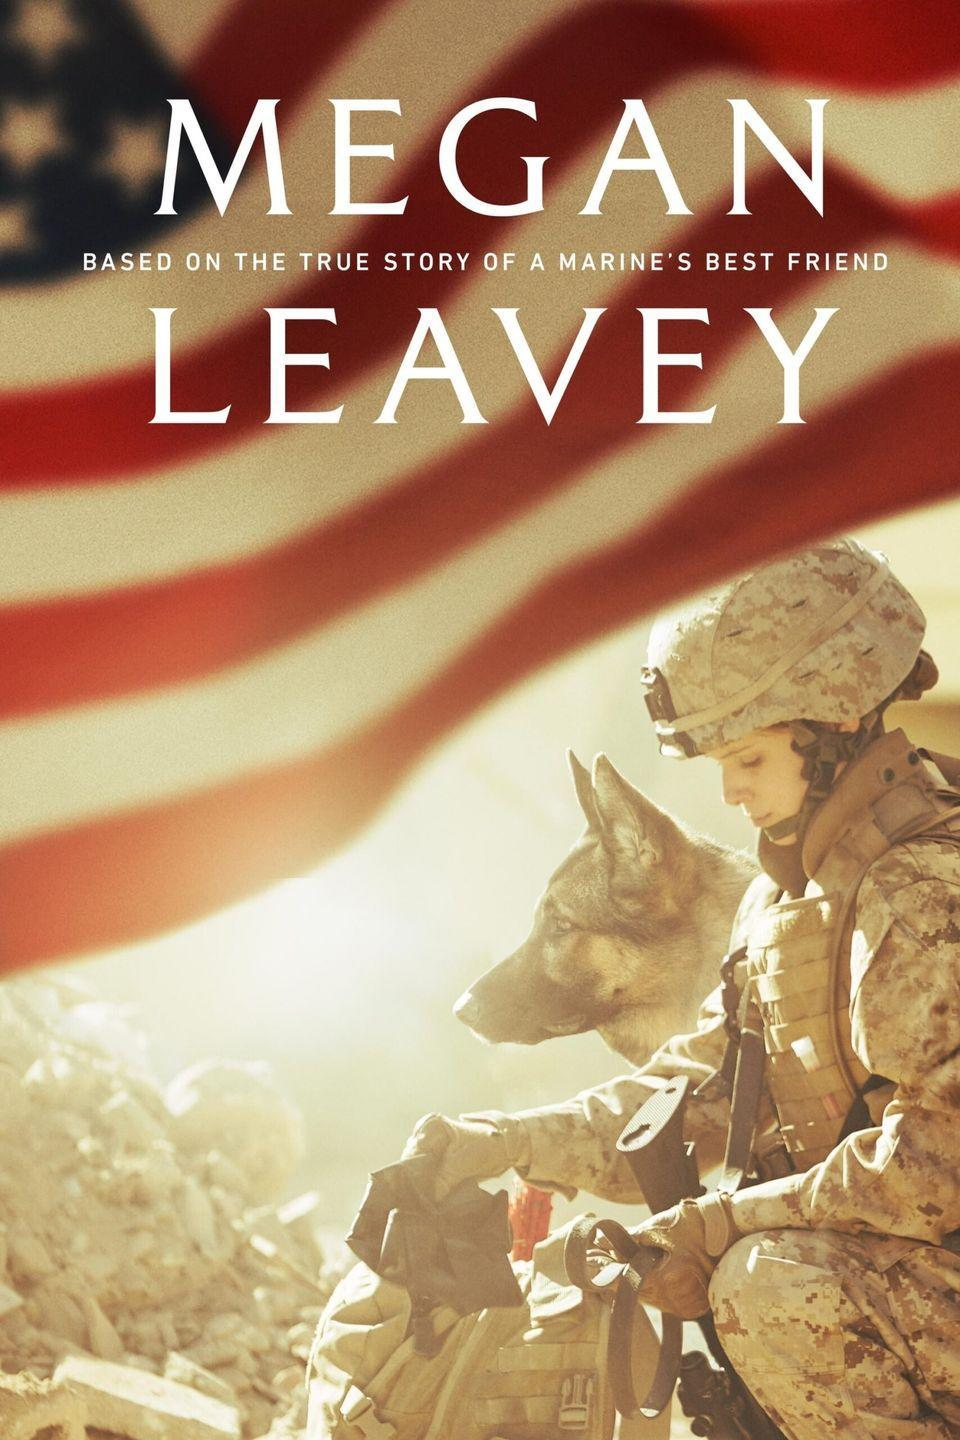 "<p><a class=""link rapid-noclick-resp"" href=""https://www.amazon.com/Megan-Leavey-Kate-Mara/dp/B071JSMKY5?tag=syn-yahoo-20&ascsubtag=%5Bartid%7C10070.g.36096919%5Bsrc%7Cyahoo-us"" rel=""nofollow noopener"" target=""_blank"" data-ylk=""slk:STREAM NOW"">STREAM NOW</a></p><p>Kate Mara stars in this biographical drama as a U.S. Marine corporal named Megan Leavey, who served as a Military Police K9 handler. Together, she and her partner Rex served two deployments in Iraq, and their story is seriously inspiring. </p>"